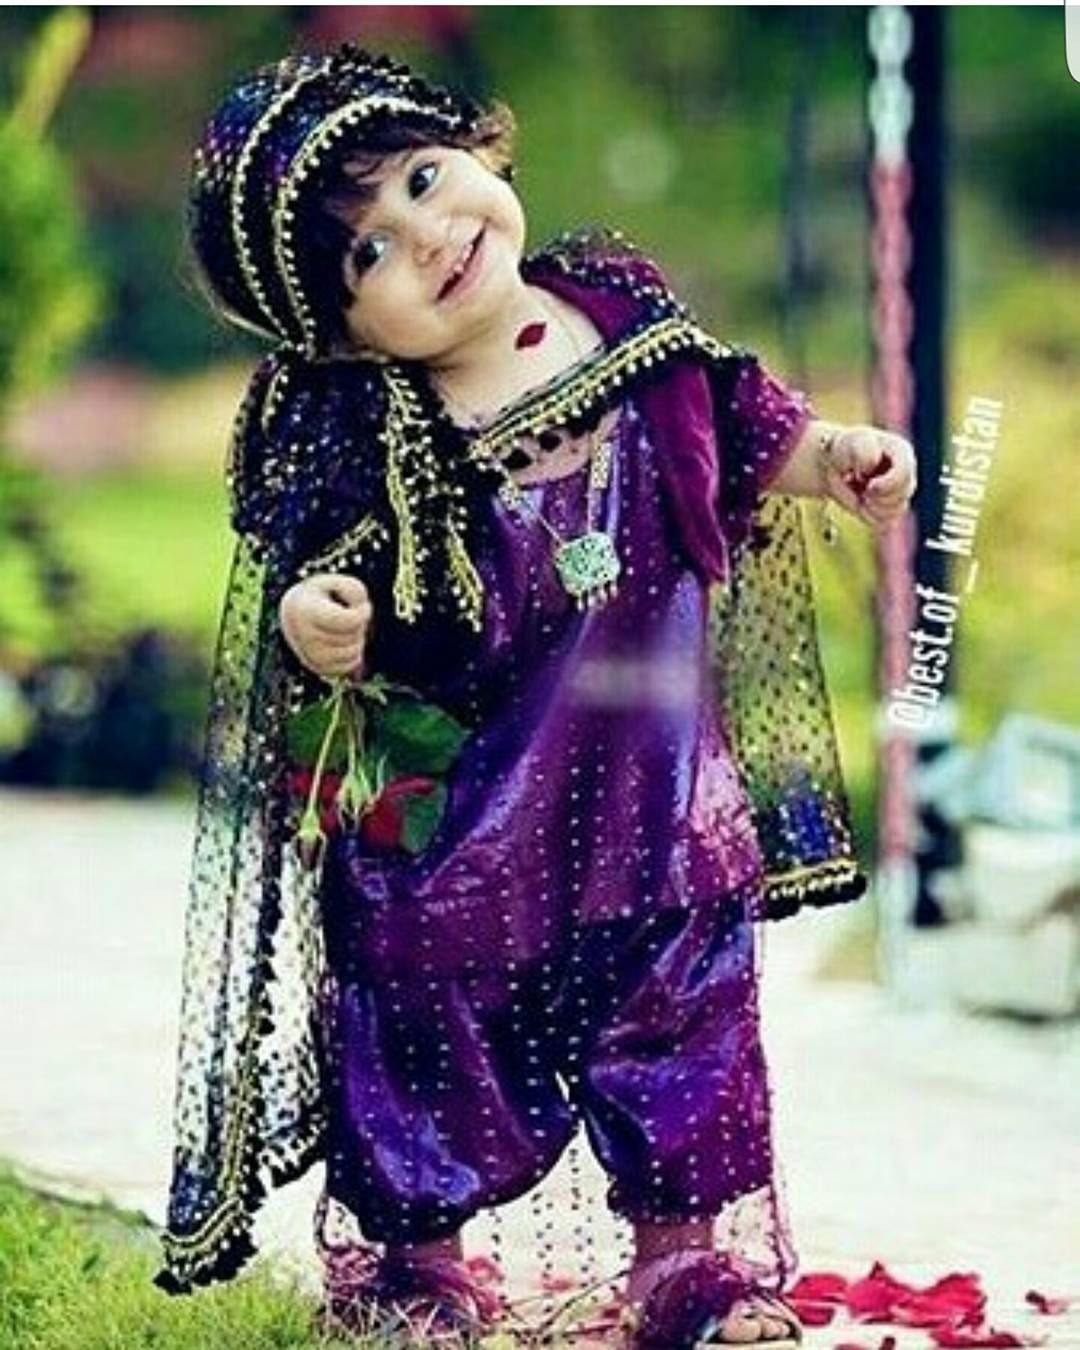 021312634380 Adorable Kurdish Girl in traditional Dress. | ceds | Cute kids ...